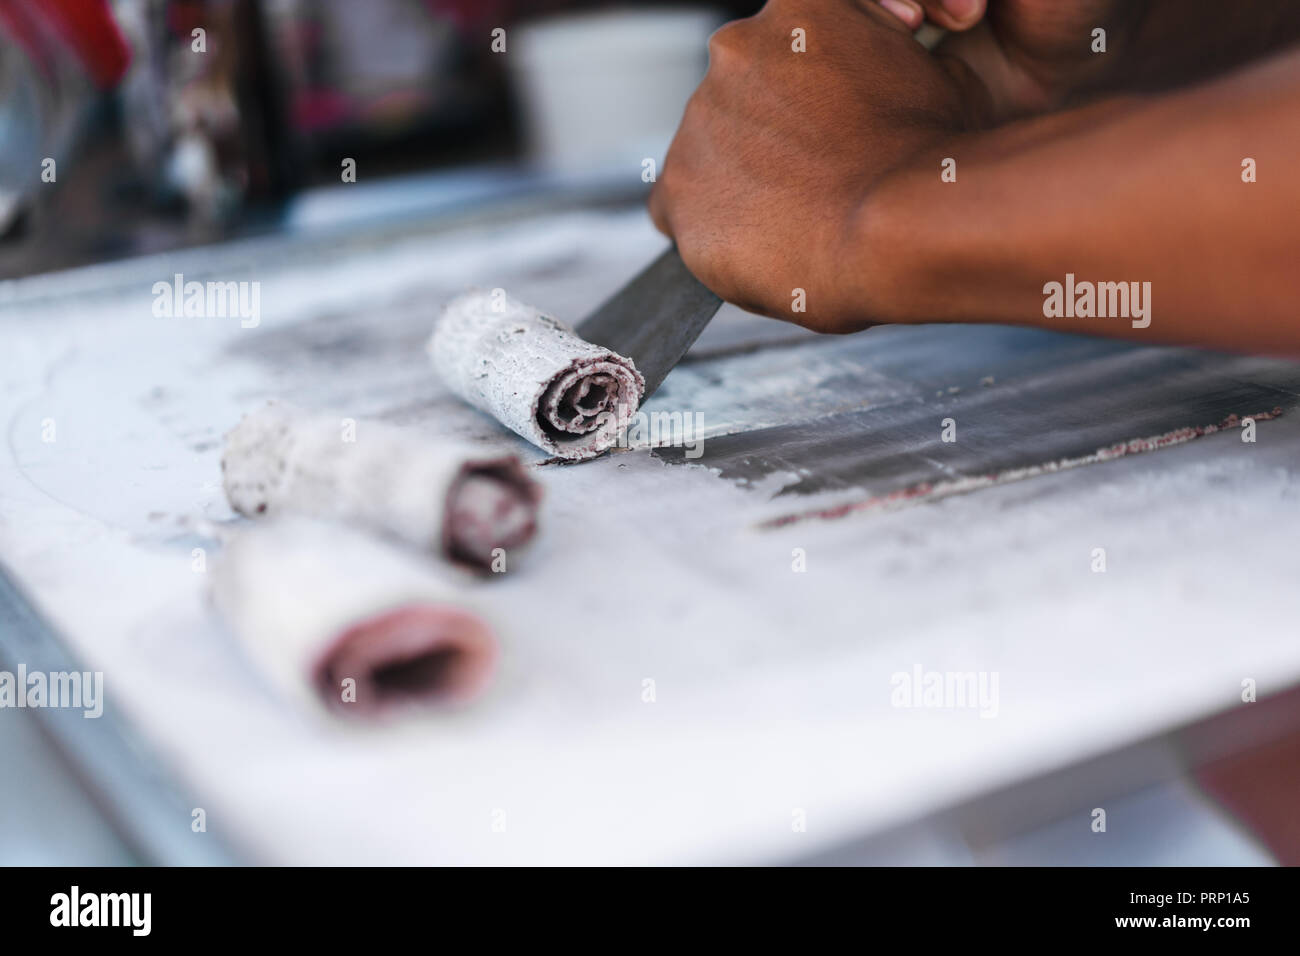 partial view of man cooking traditional sweet dessert - Stock Image